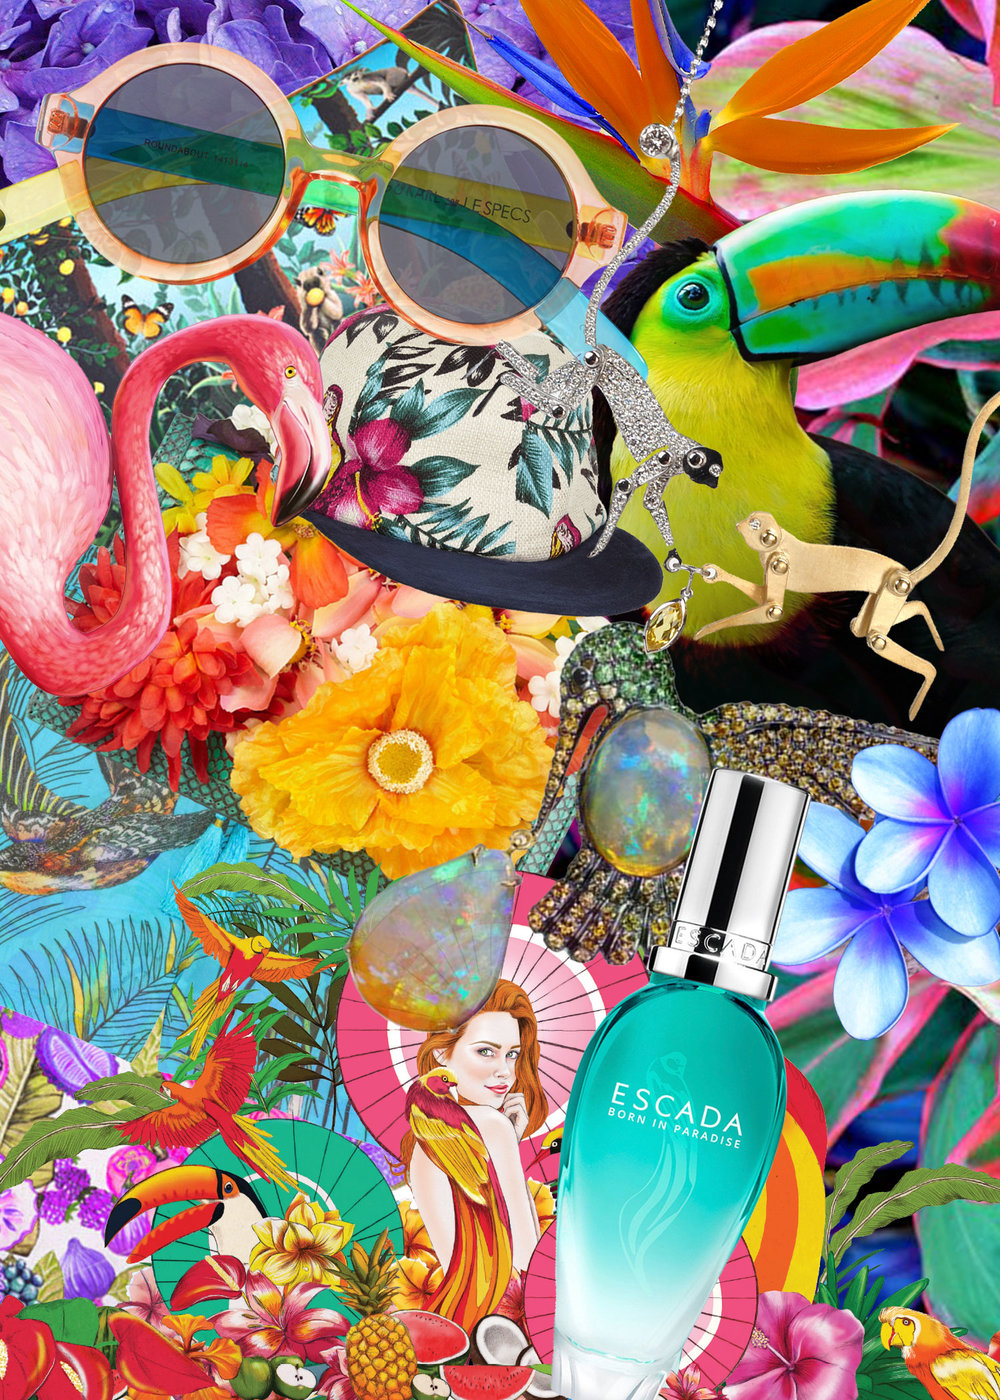 escada-collage2.jpg